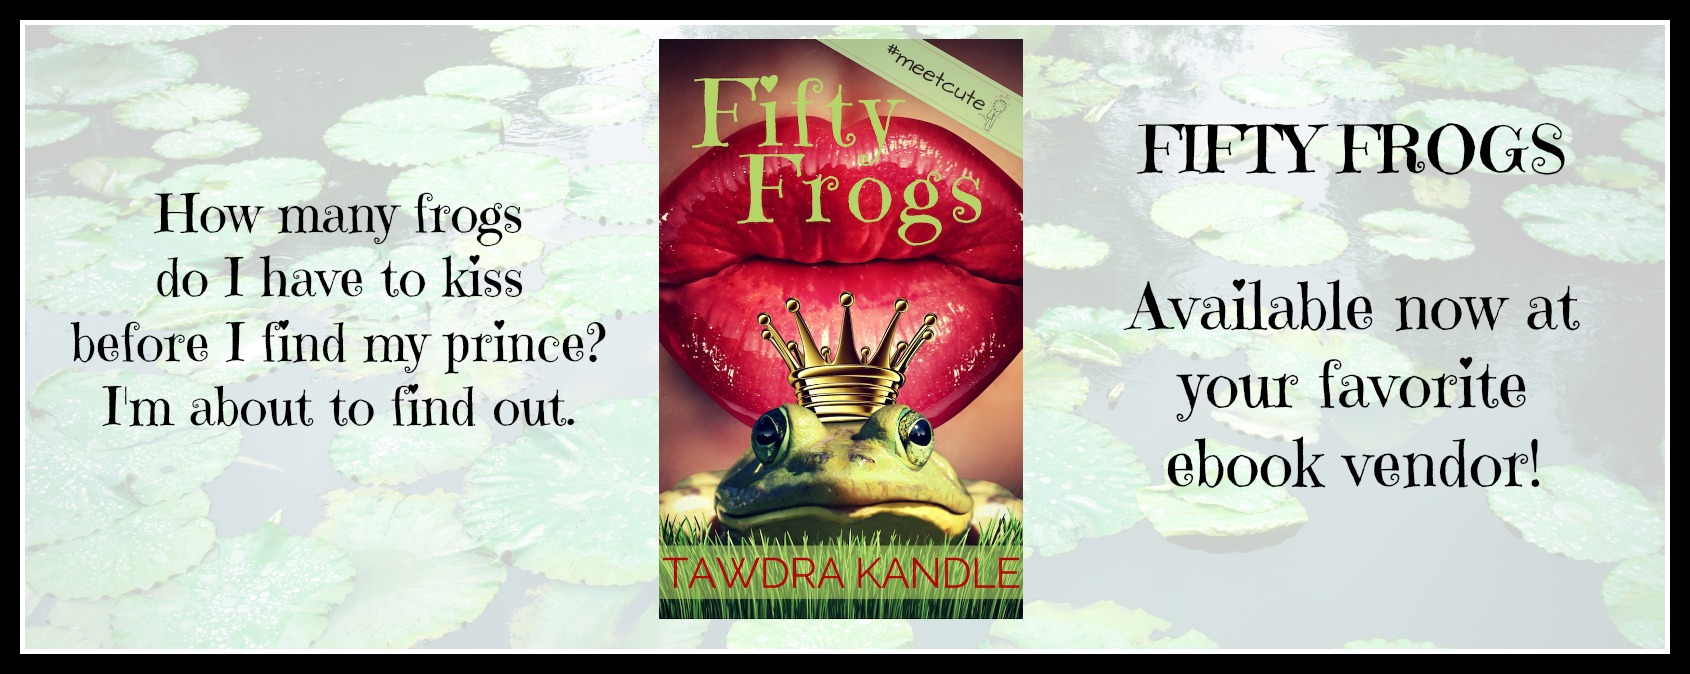 New Release: Fifty Frogs By Tawdra Kandle